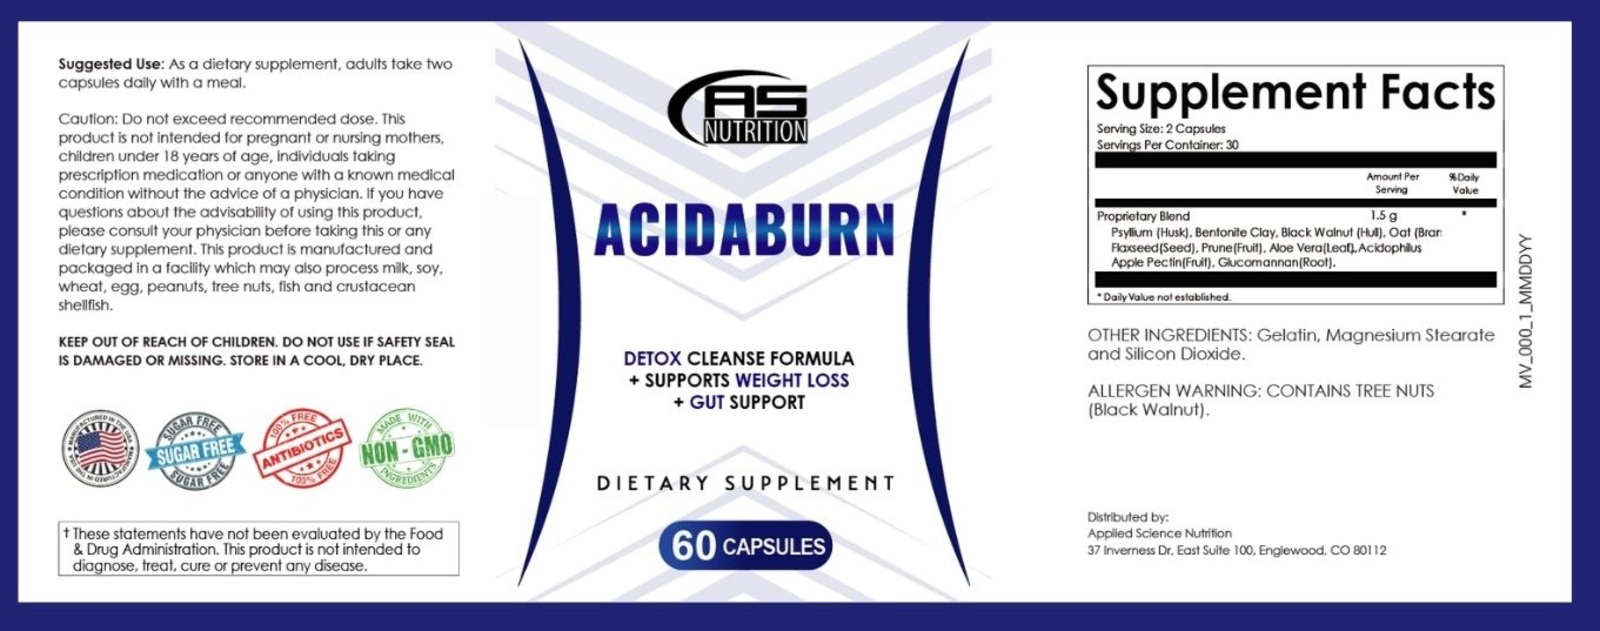 acidaburn ingredients